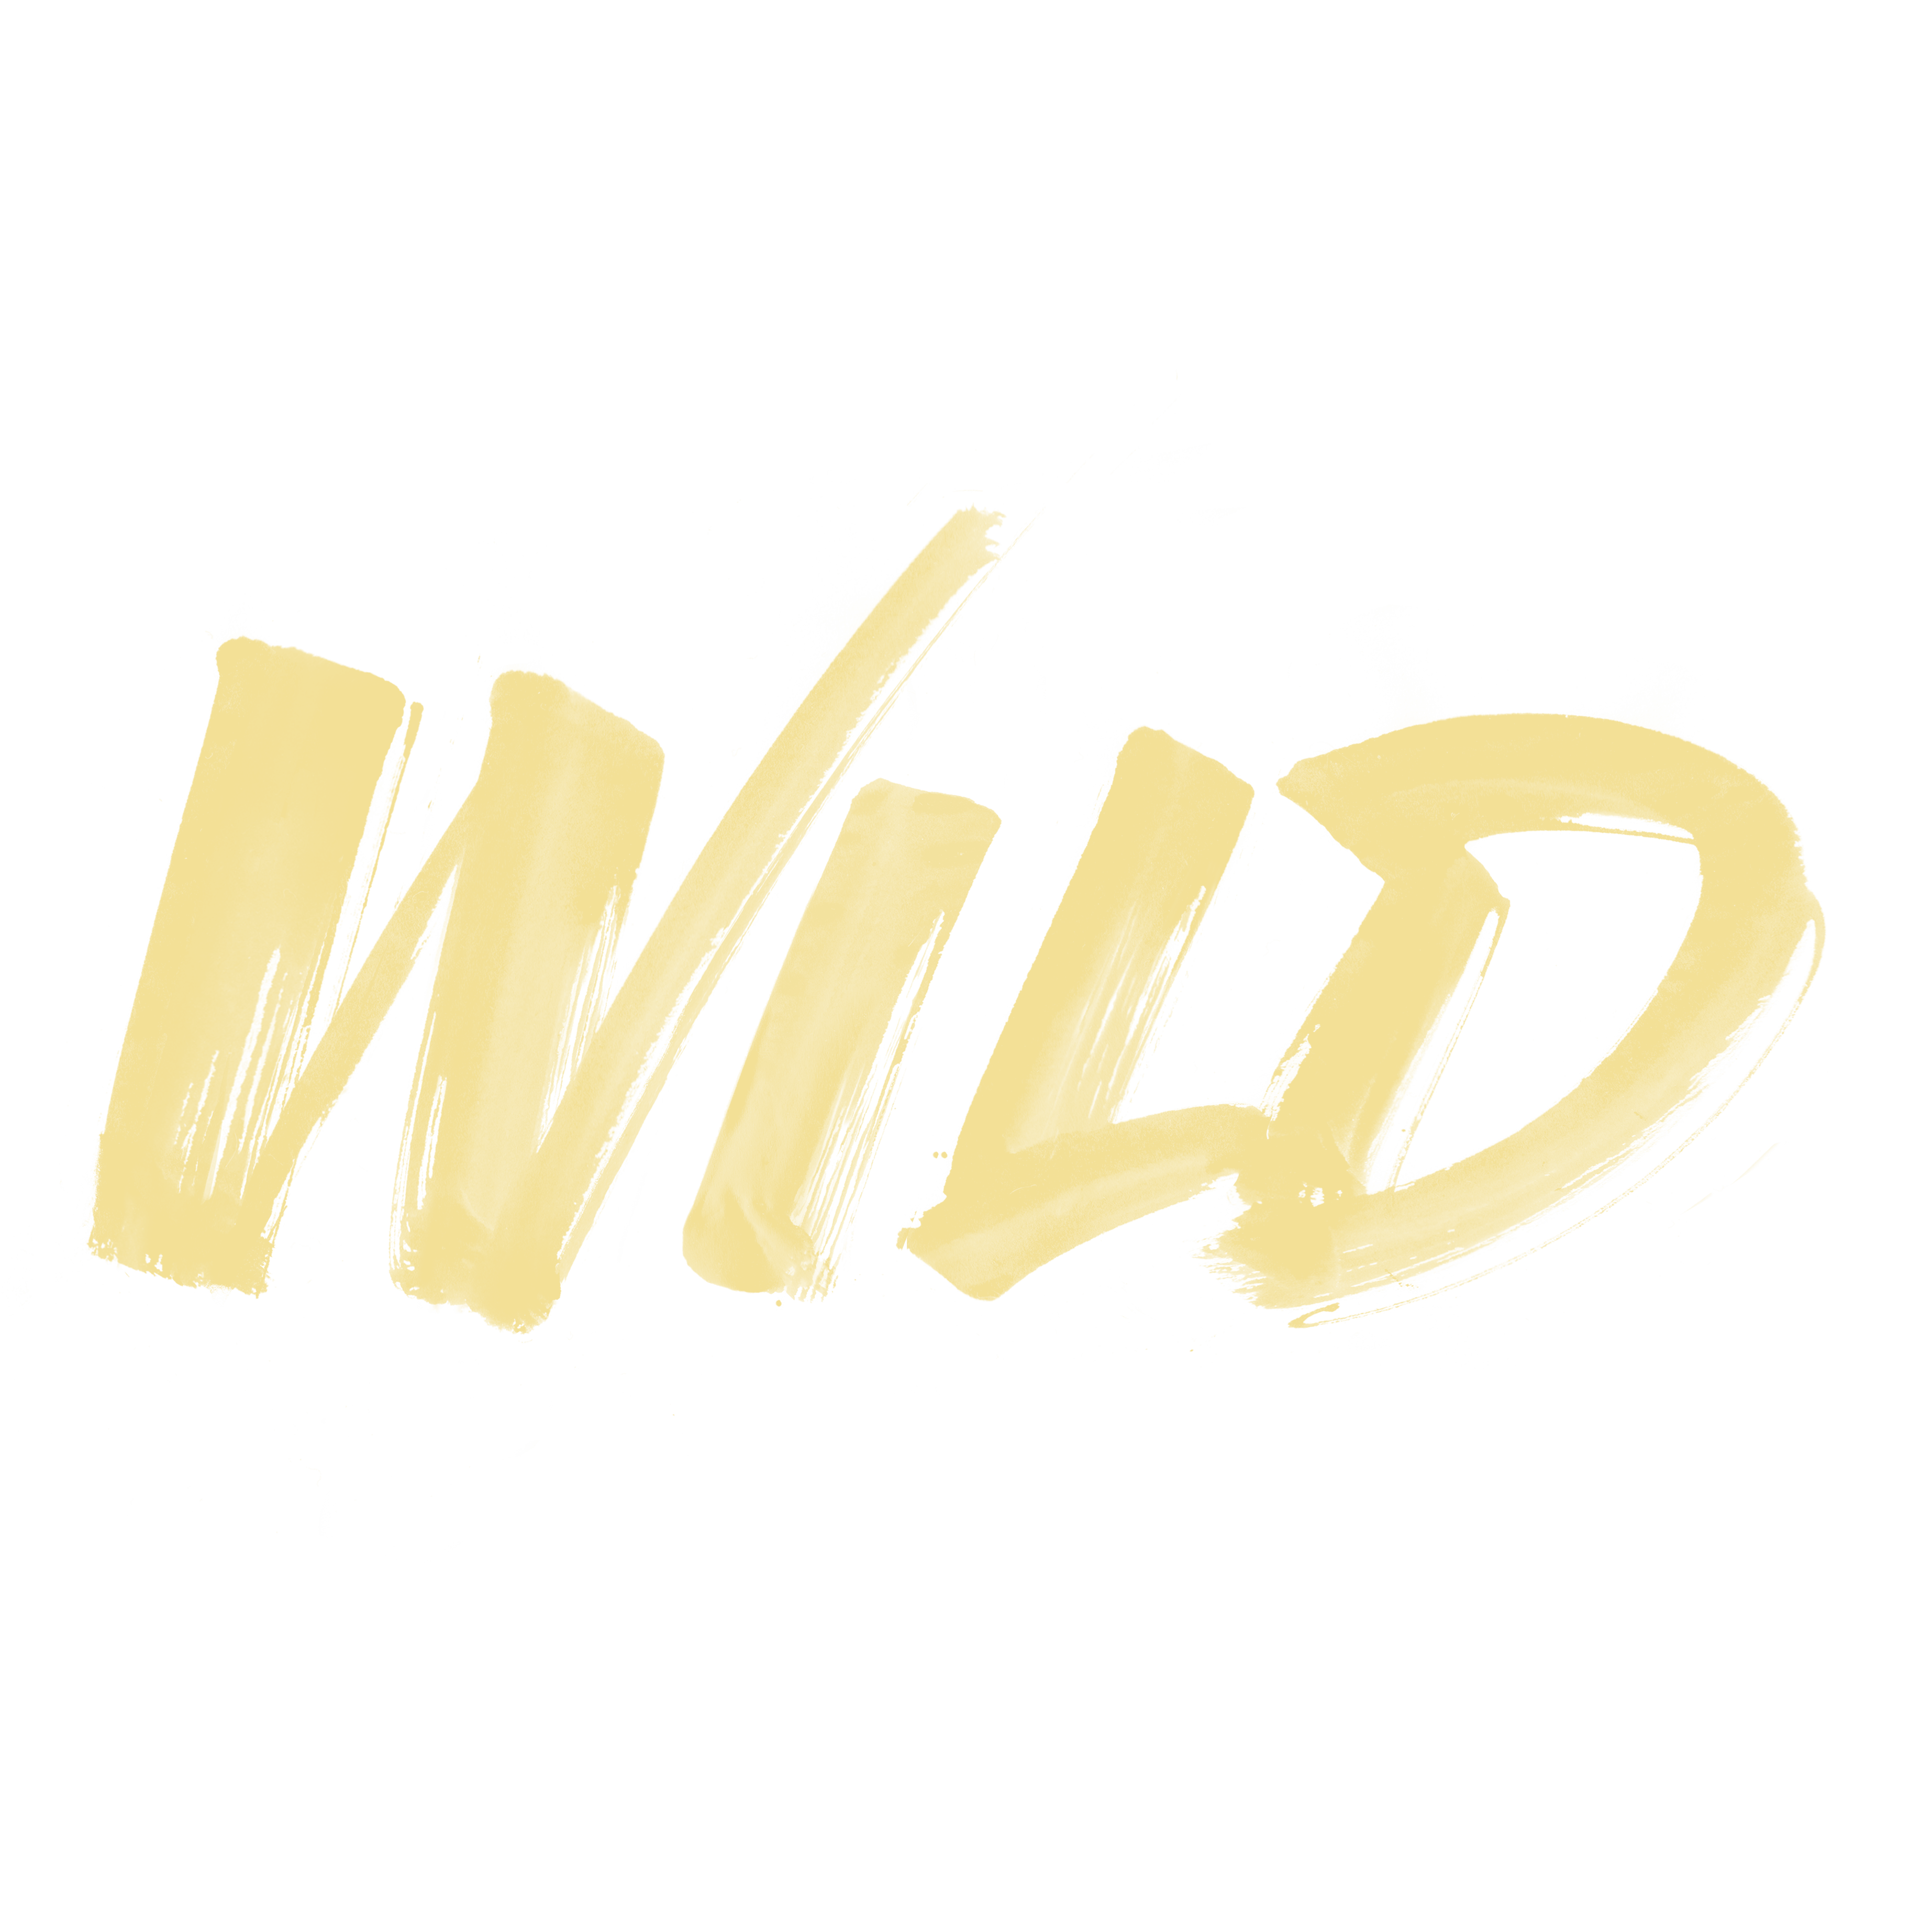 File:Wild from Troye Sivan.png.